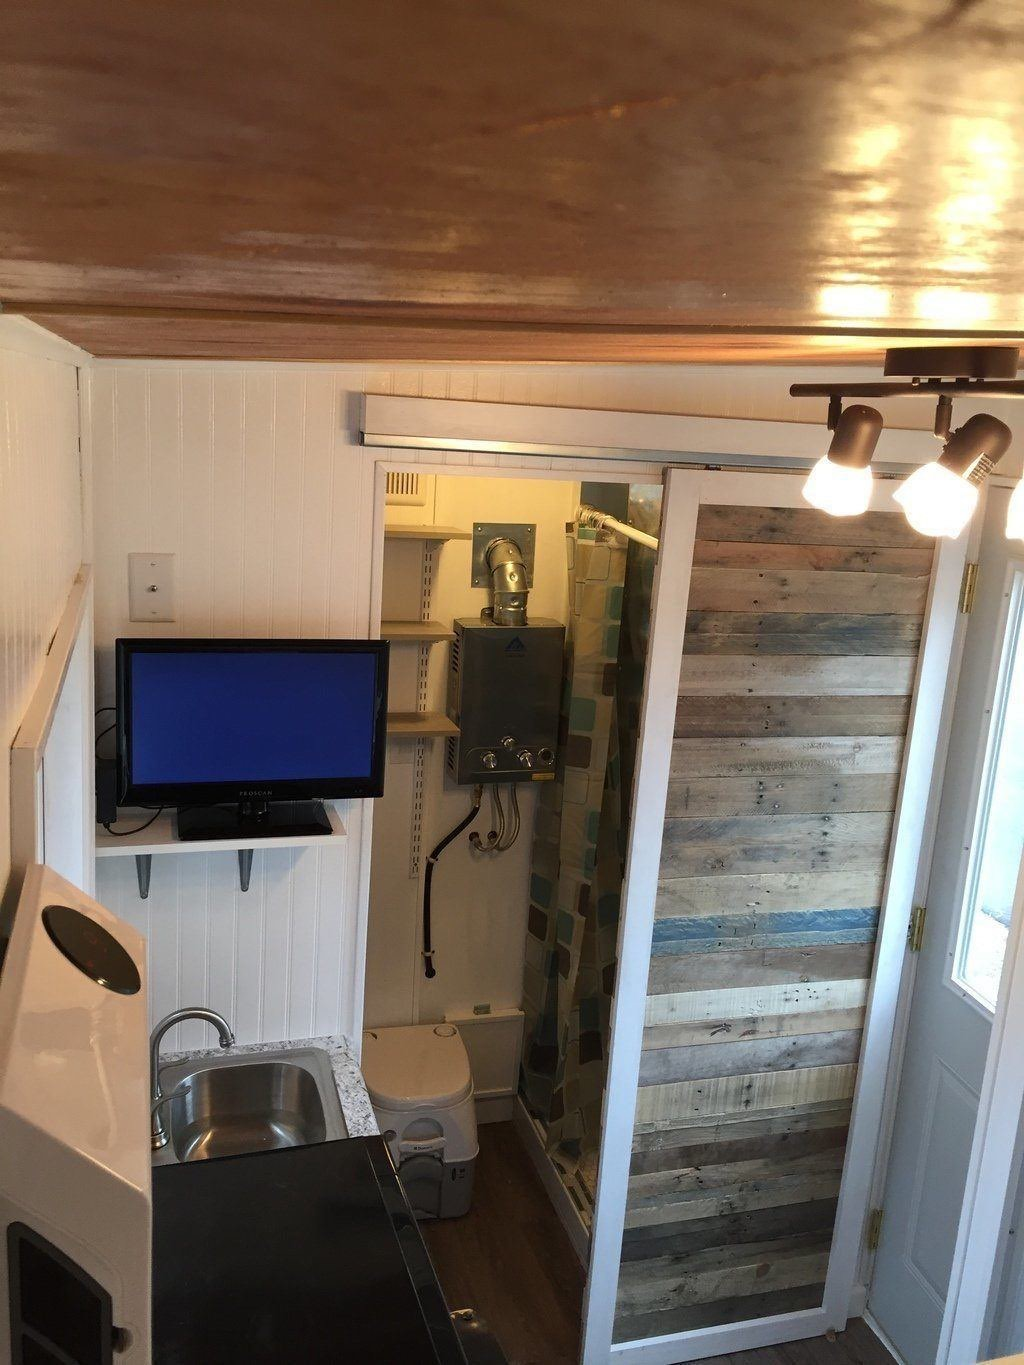 92-square-feet-tiny-house-16